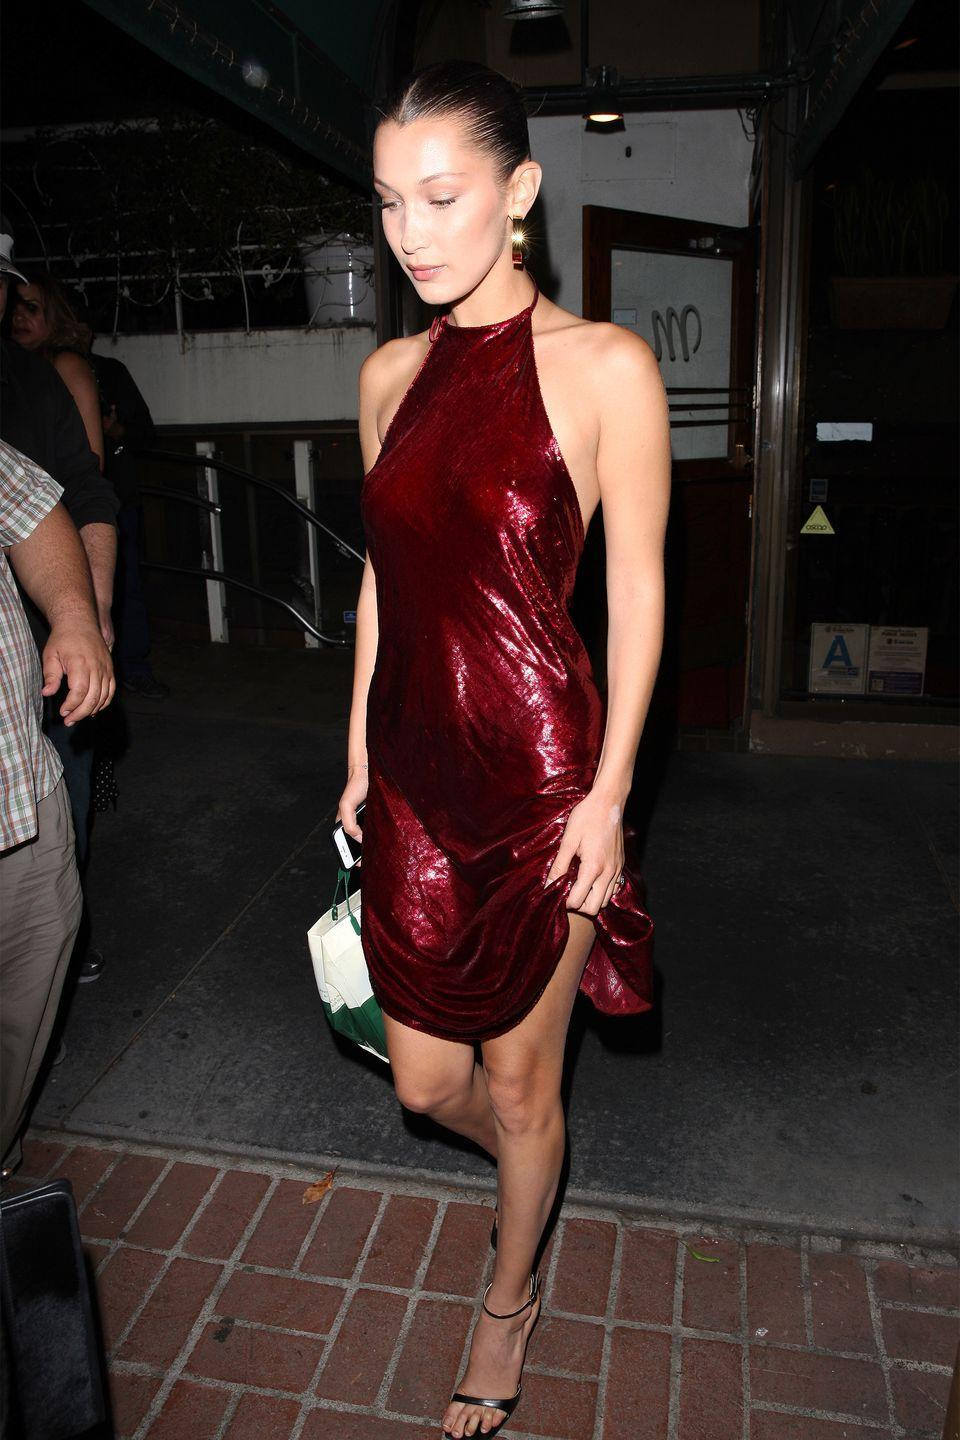 <p>In a shimmery Area velvet red halter dress, gold hoop earrings and metallic sandals while out to dinner in West Hollywood for Father's Day.</p>